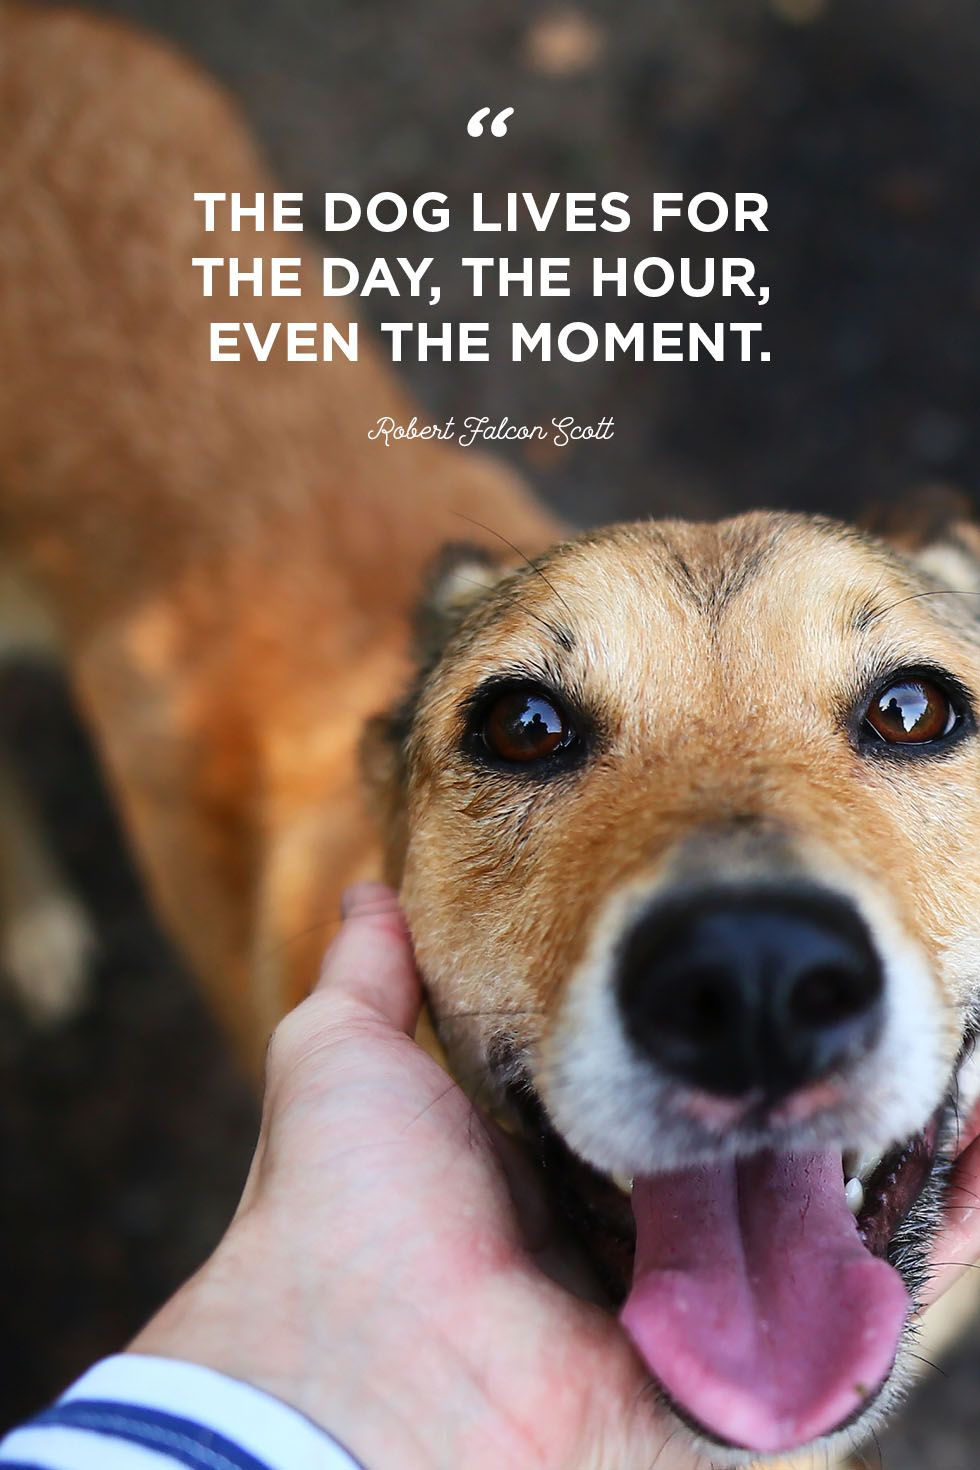 10 Best Dog Quotes - Cute, Sweet Quotes About Dogs